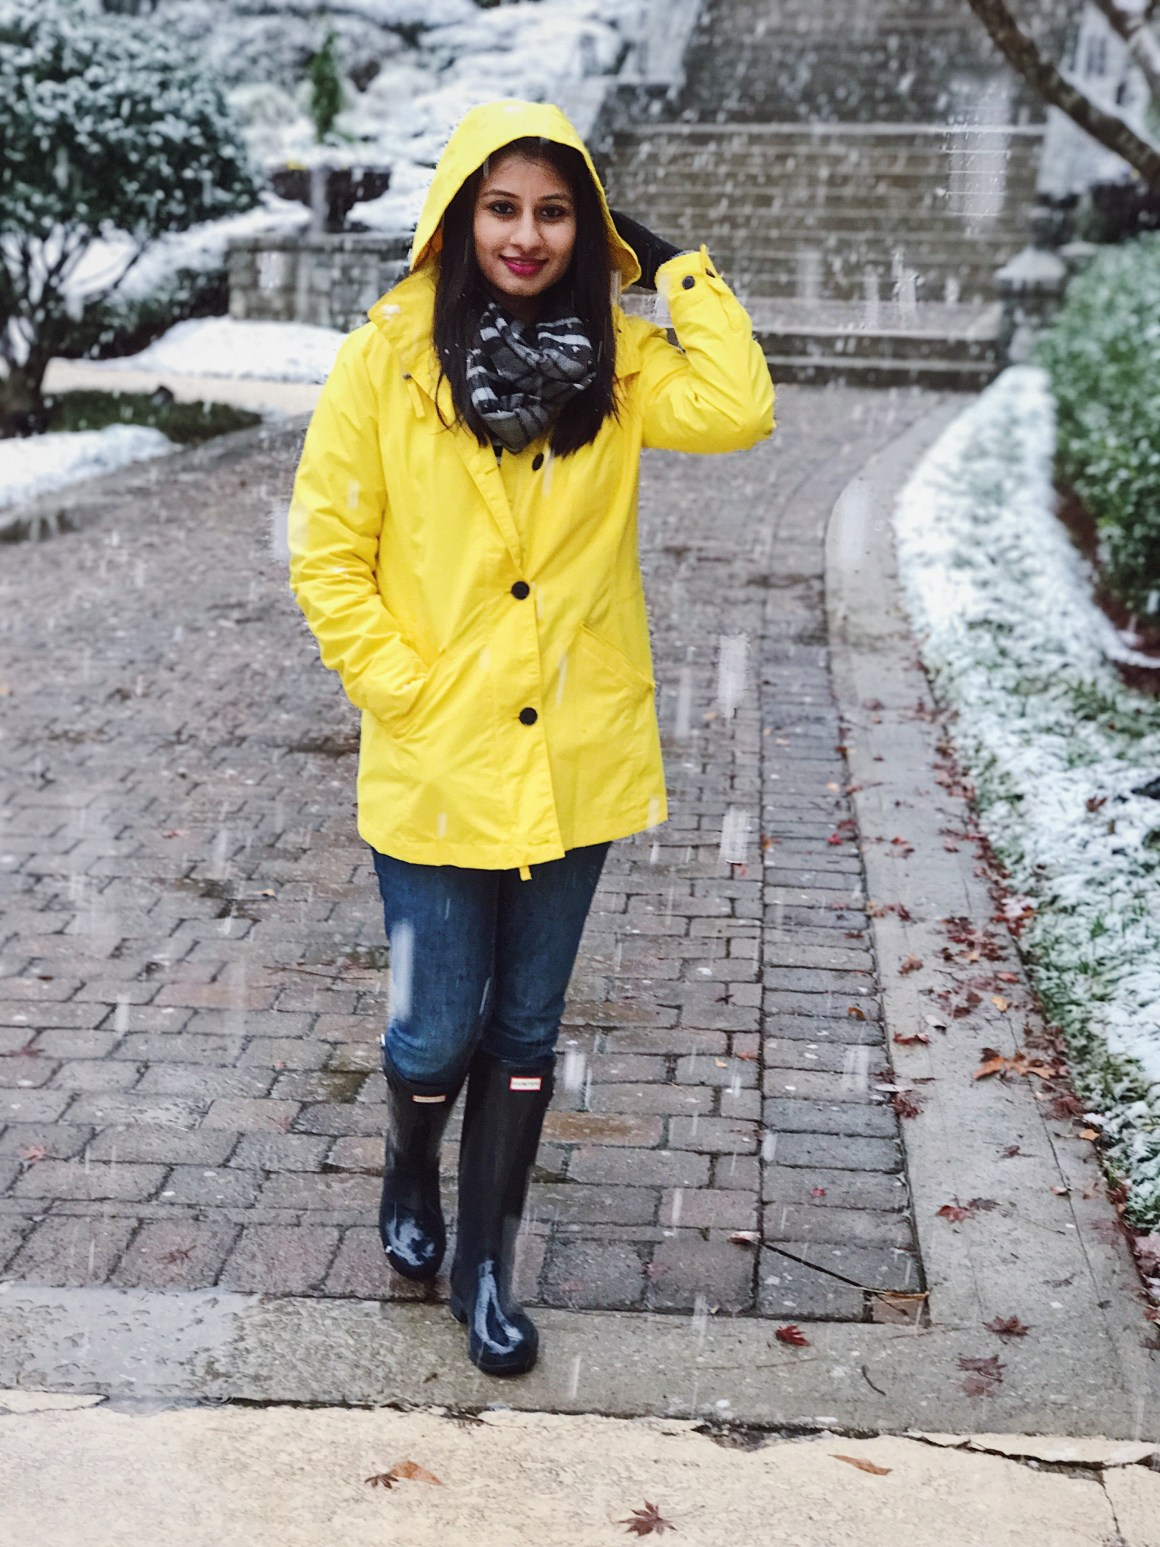 Let it Snow - Land's End Yellow Jacket, Hunter Tour Boots